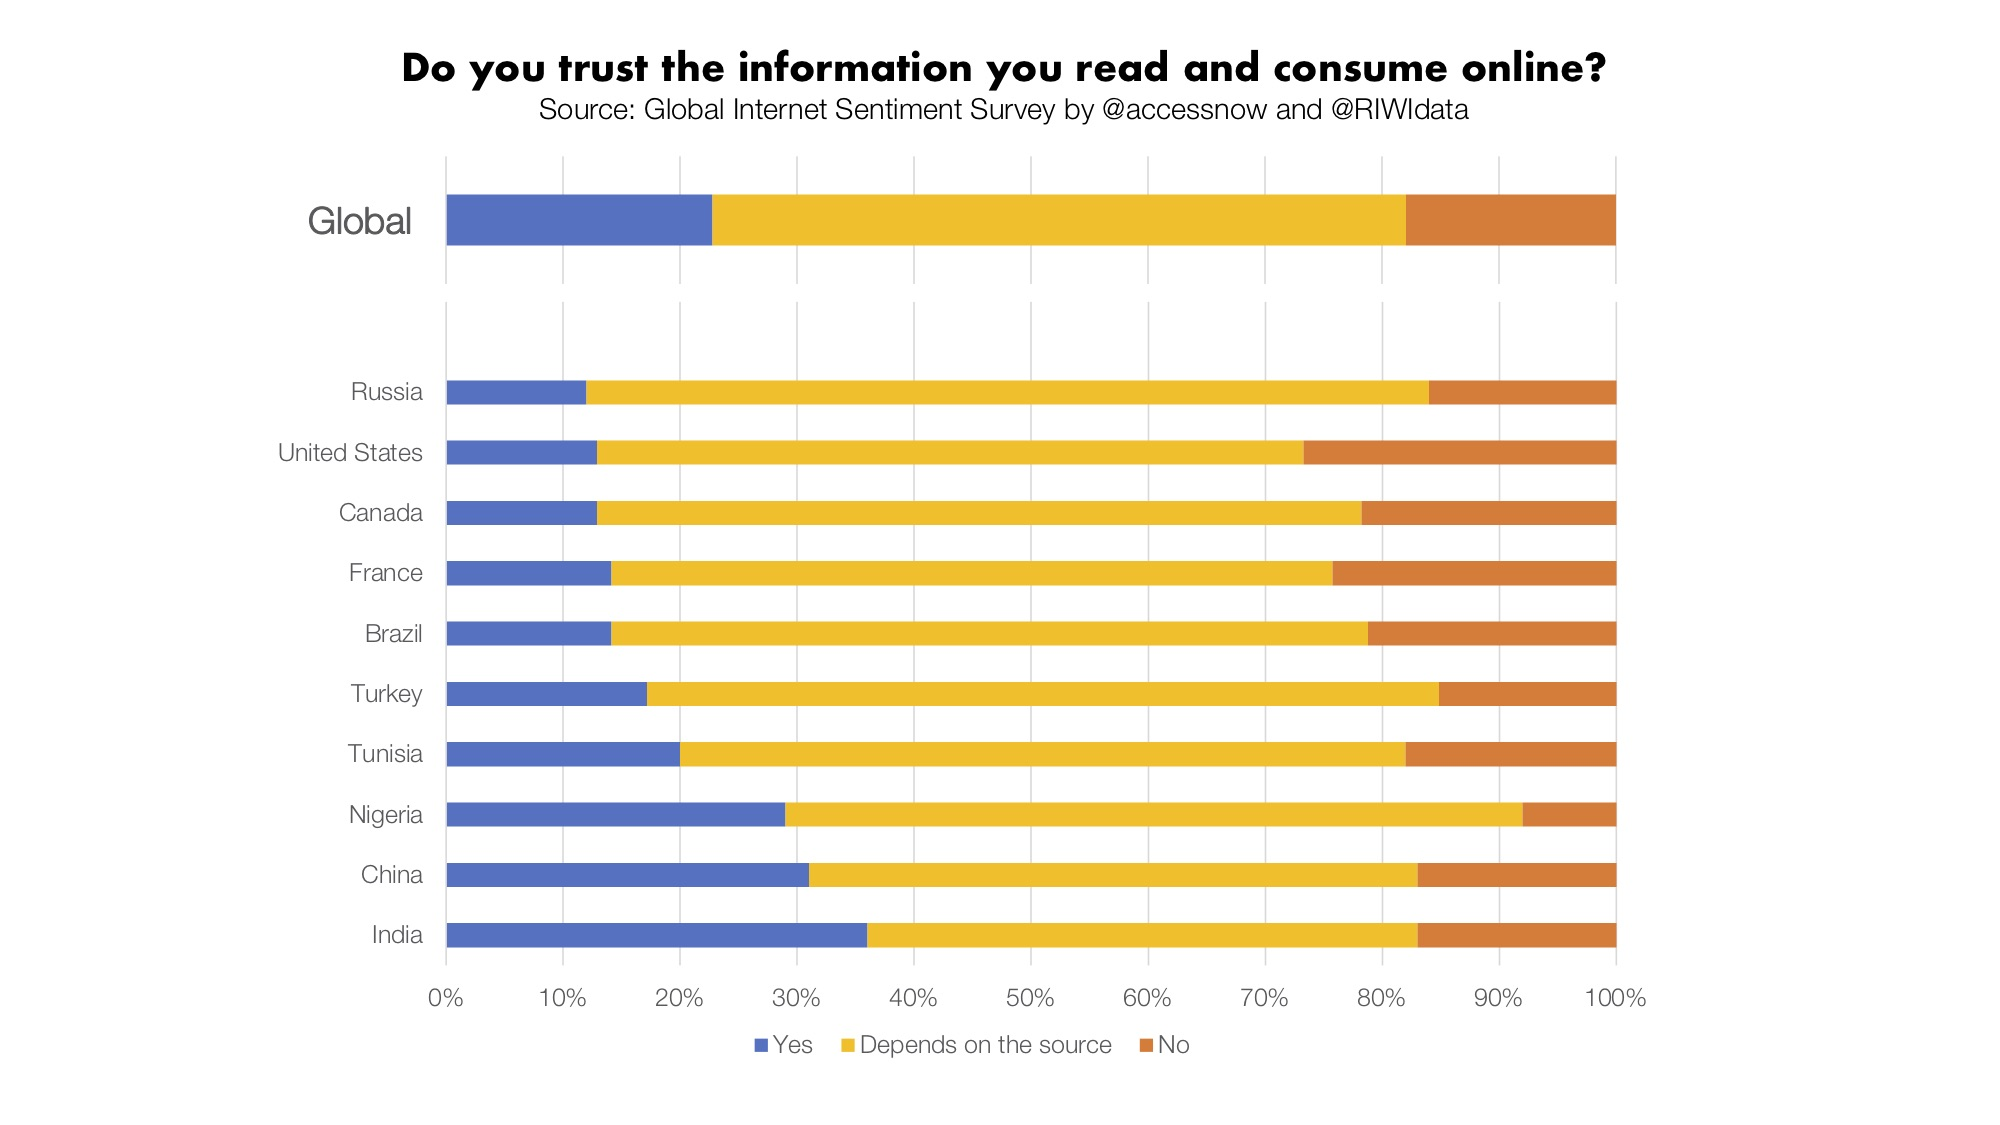 Do you trust the information you read and consume online?